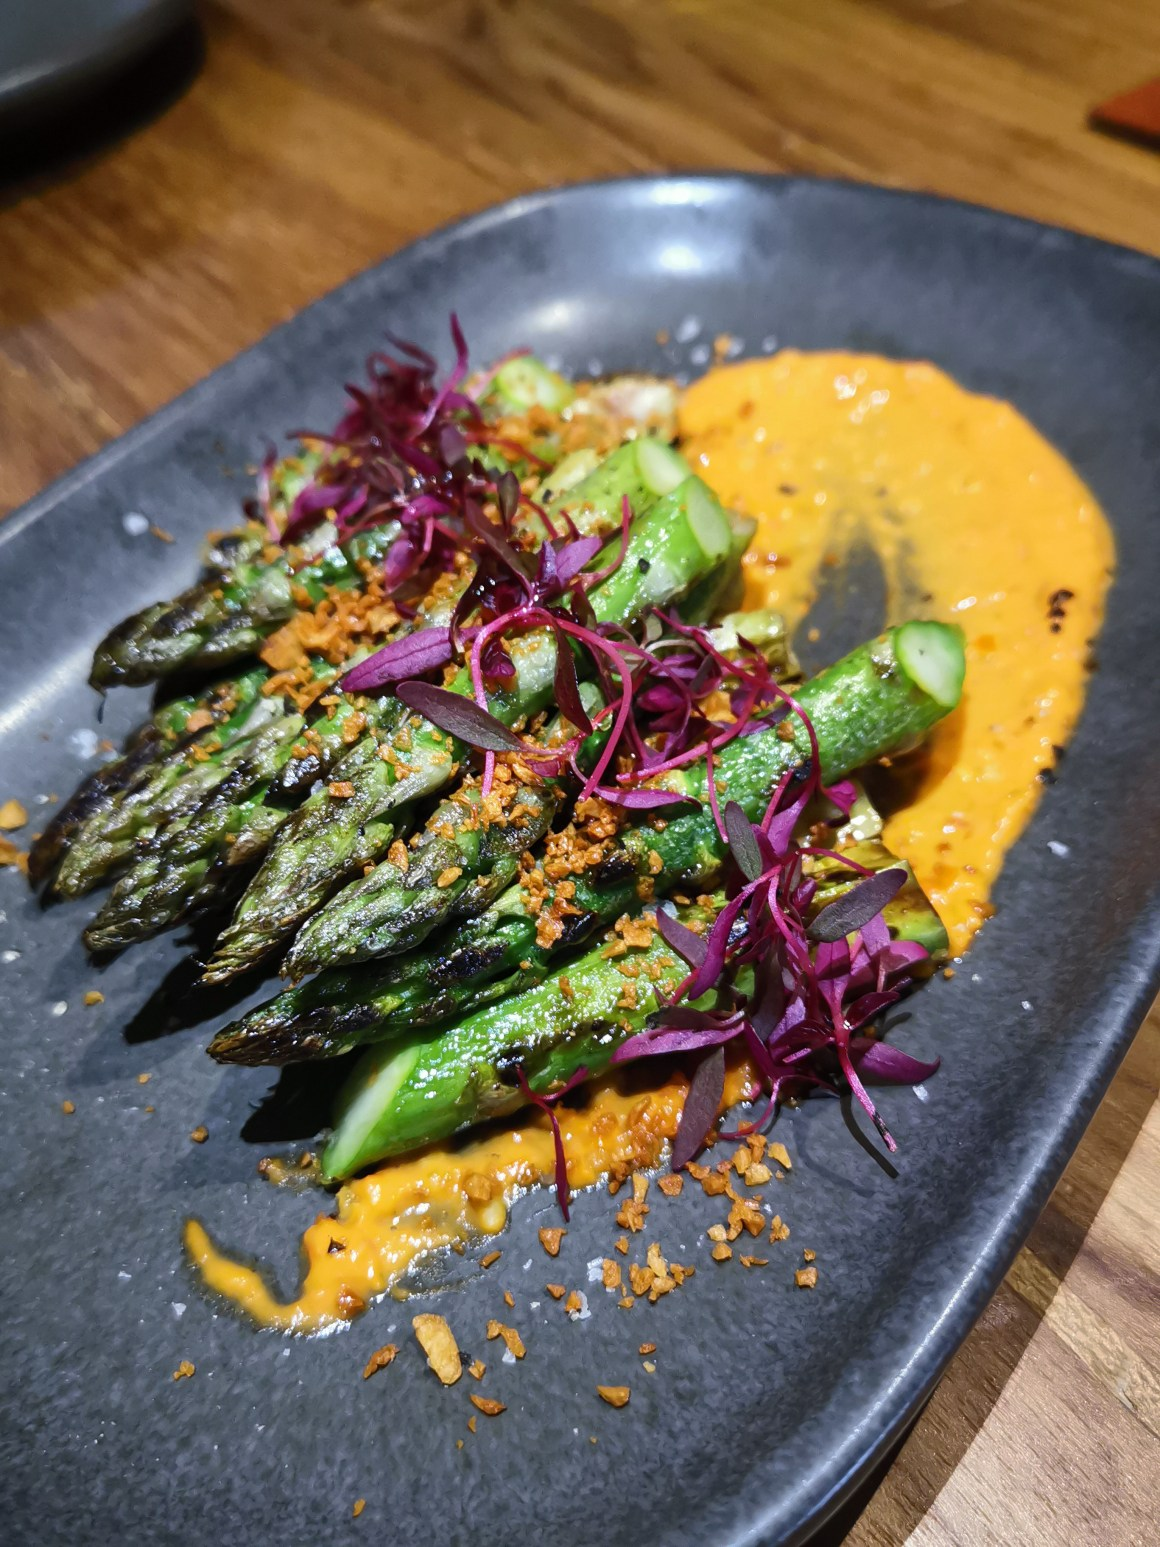 Kafe Utu, First Afro Cafe & Lounge In Singapore - Charred Asparagus ($16)